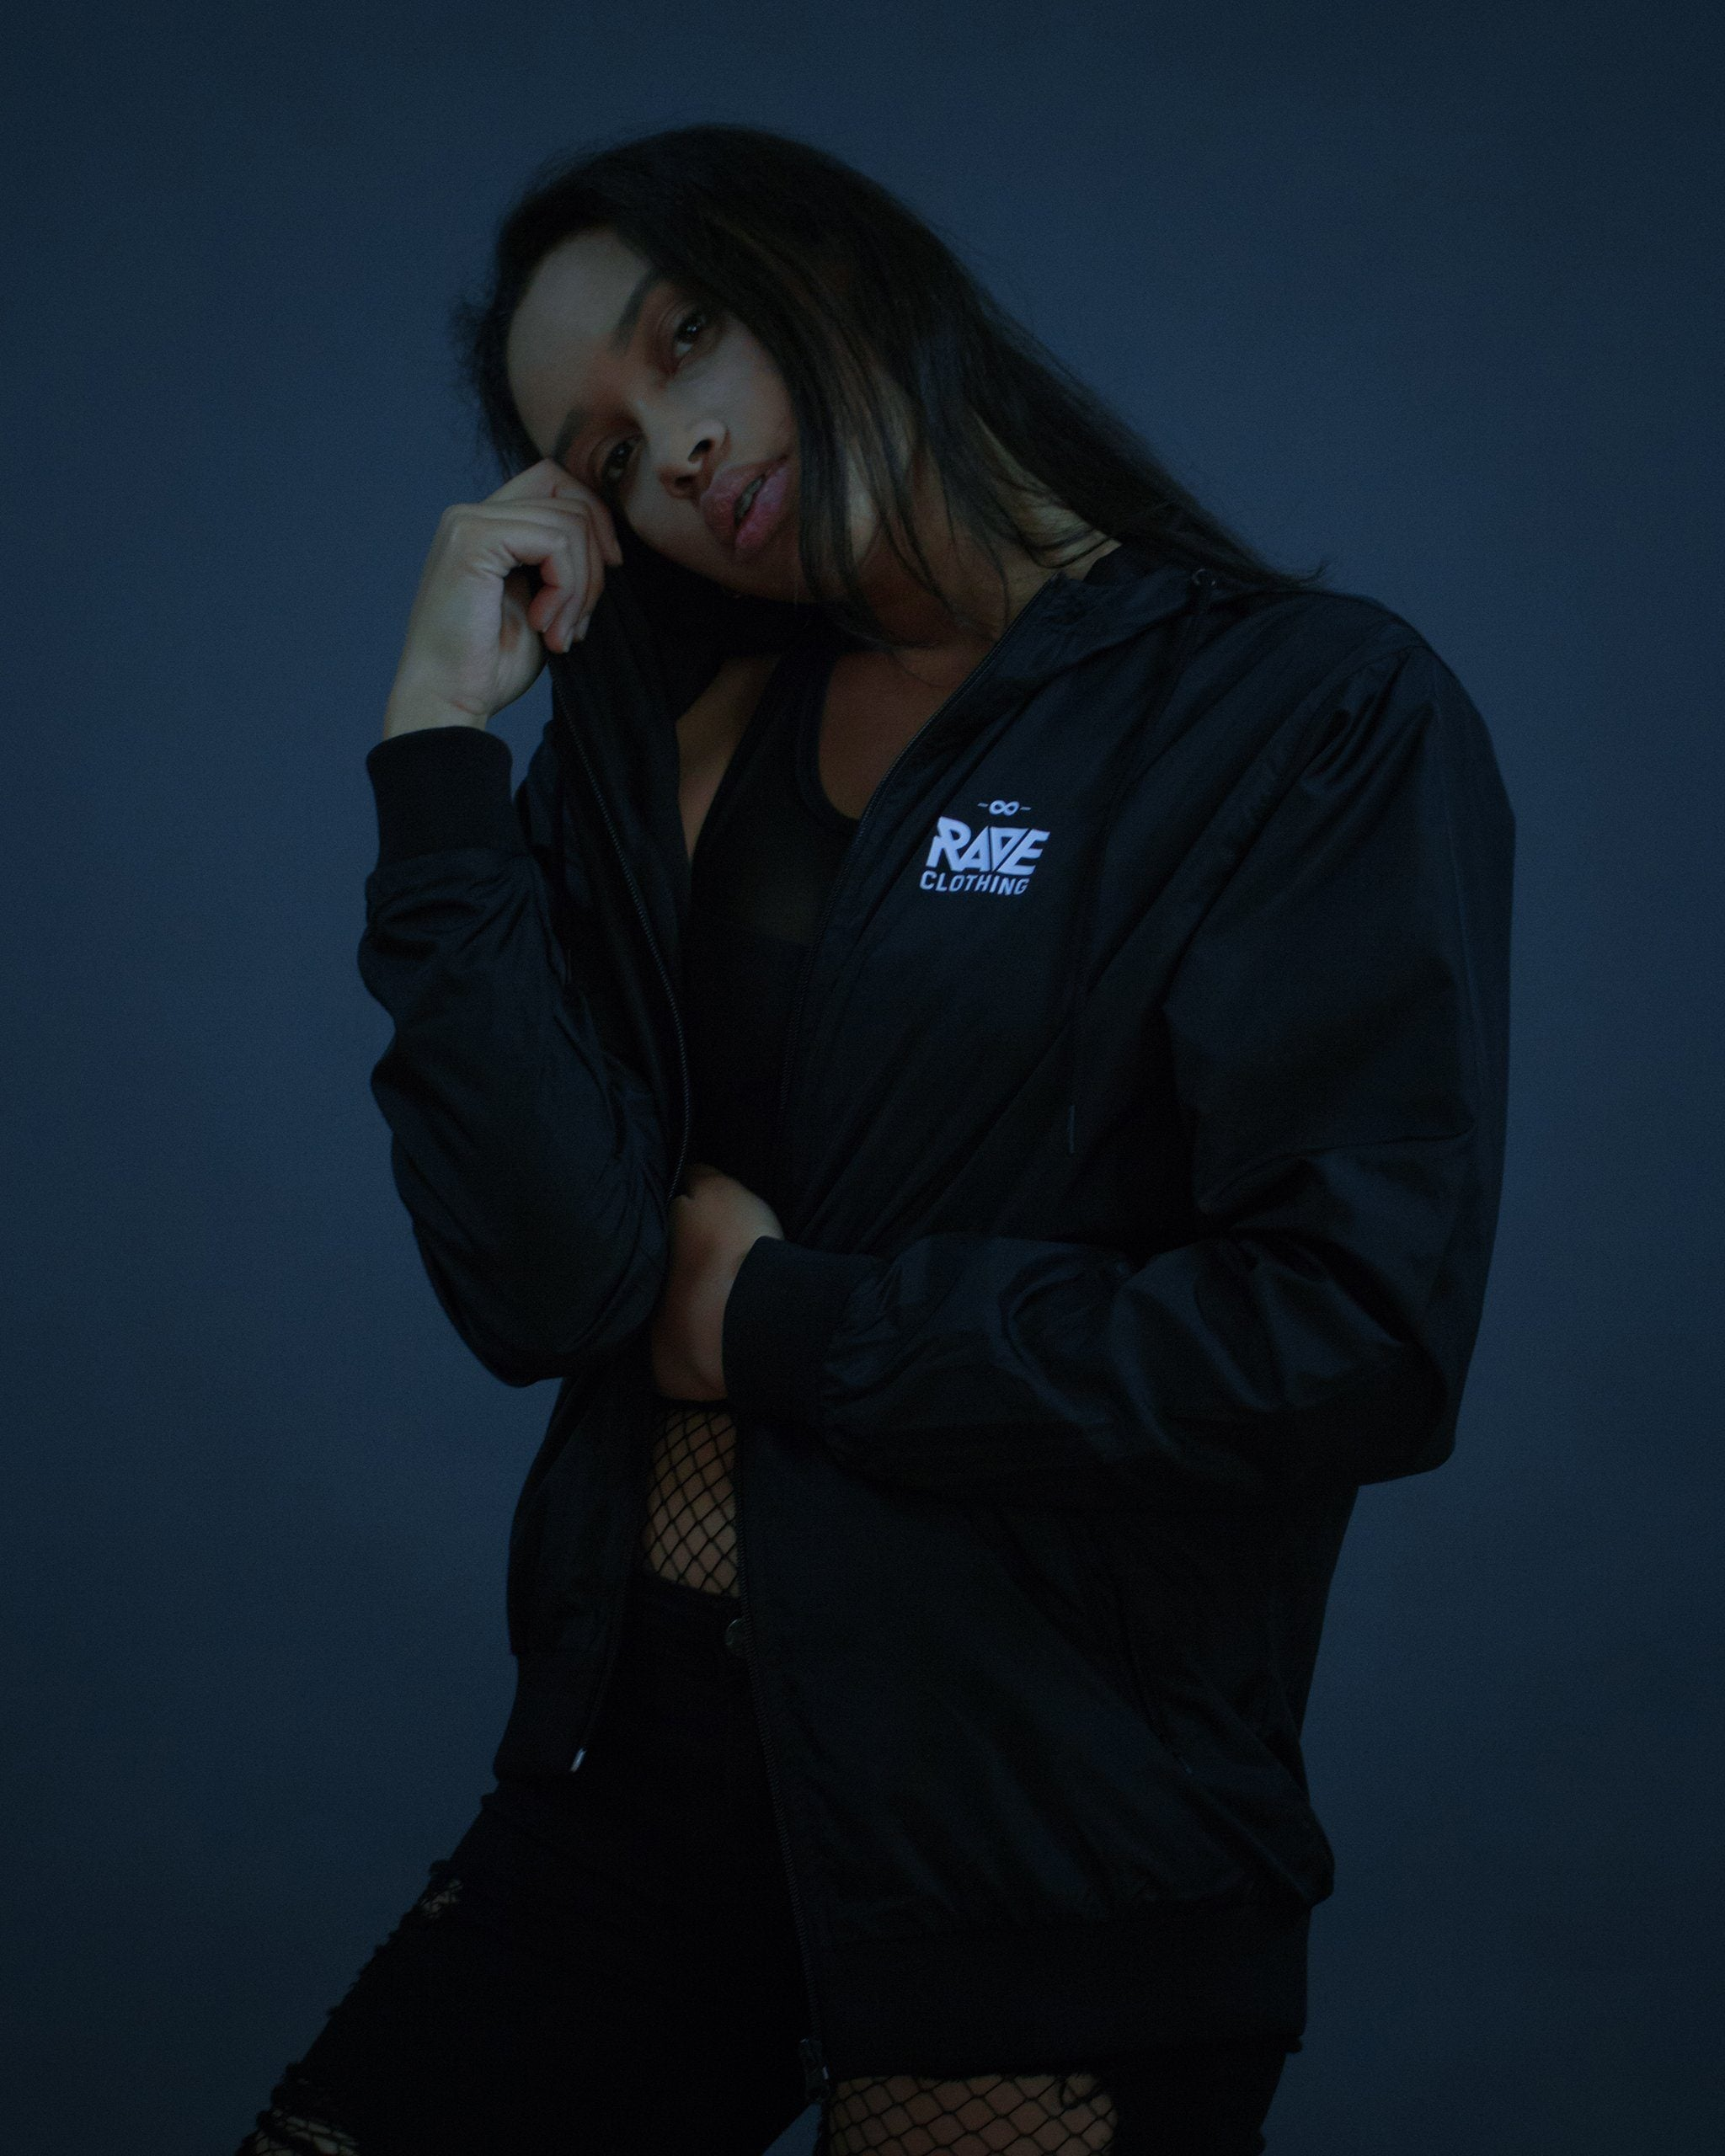 Techno windbreaker from RAVE Clothing